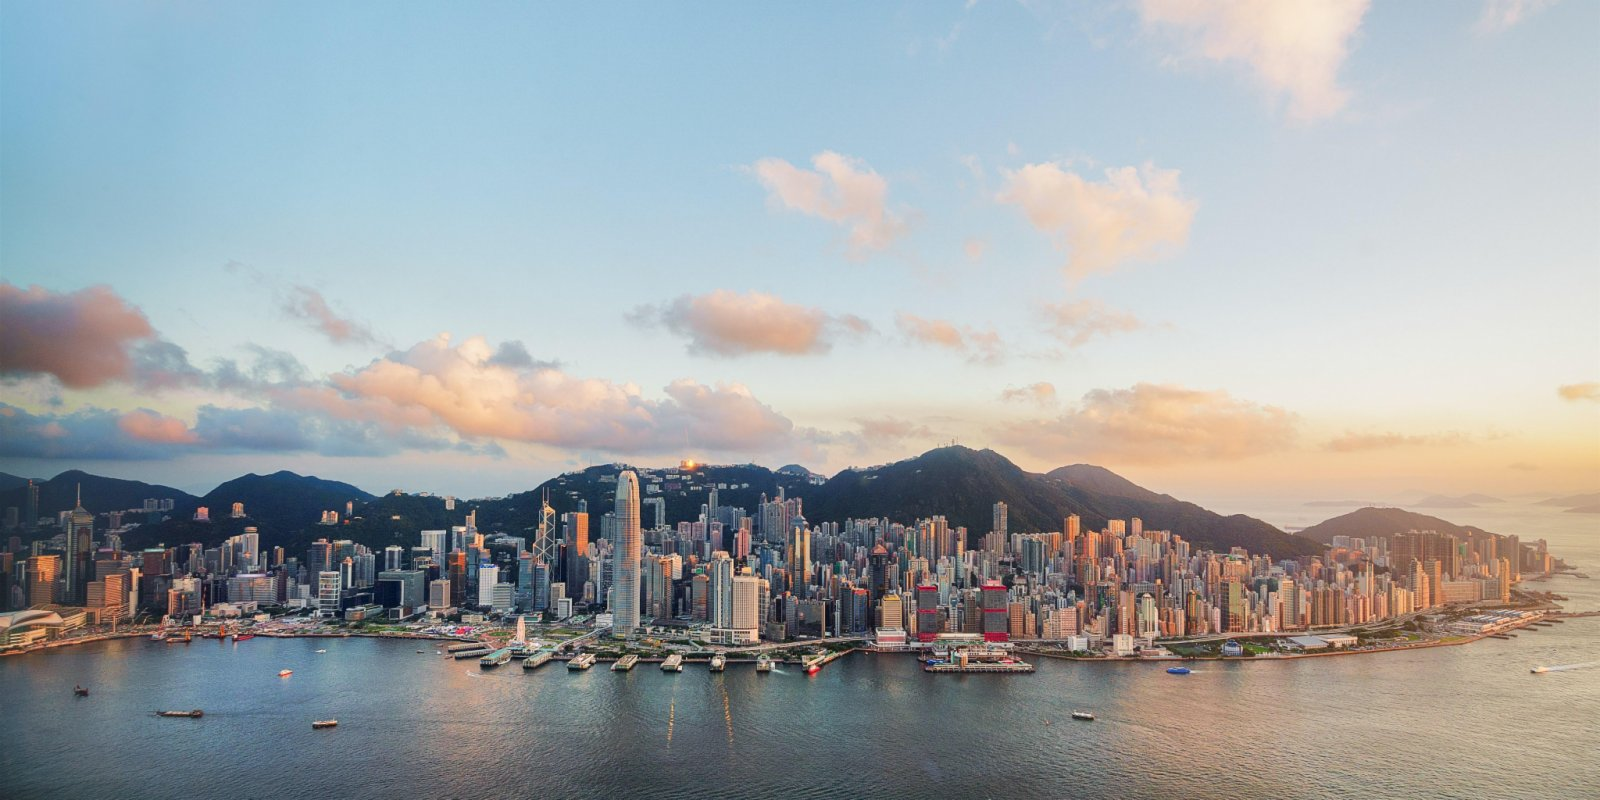 HK: Social distancing rules, quarantine policy extended to Sept 30